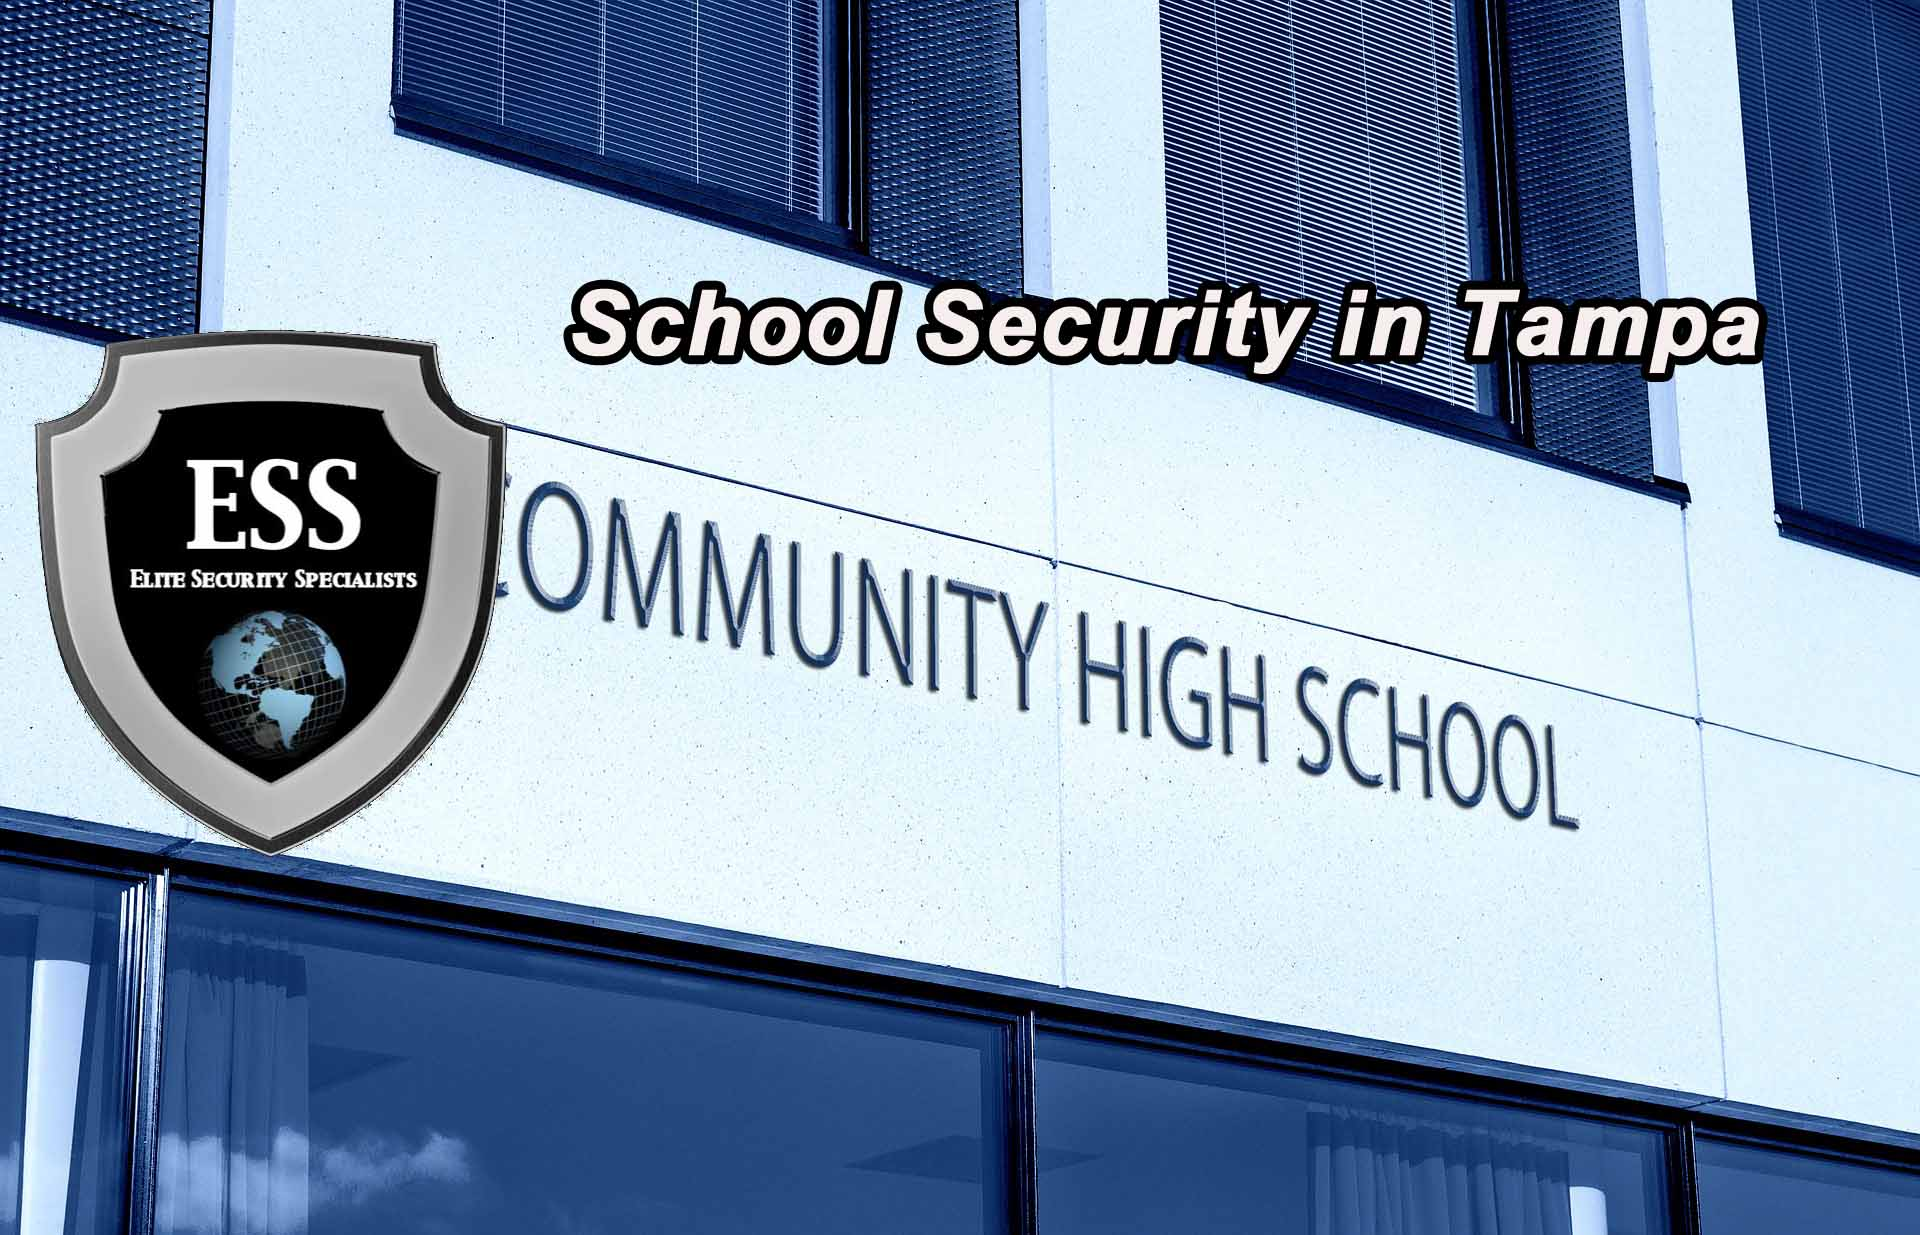 School Security in Tampa